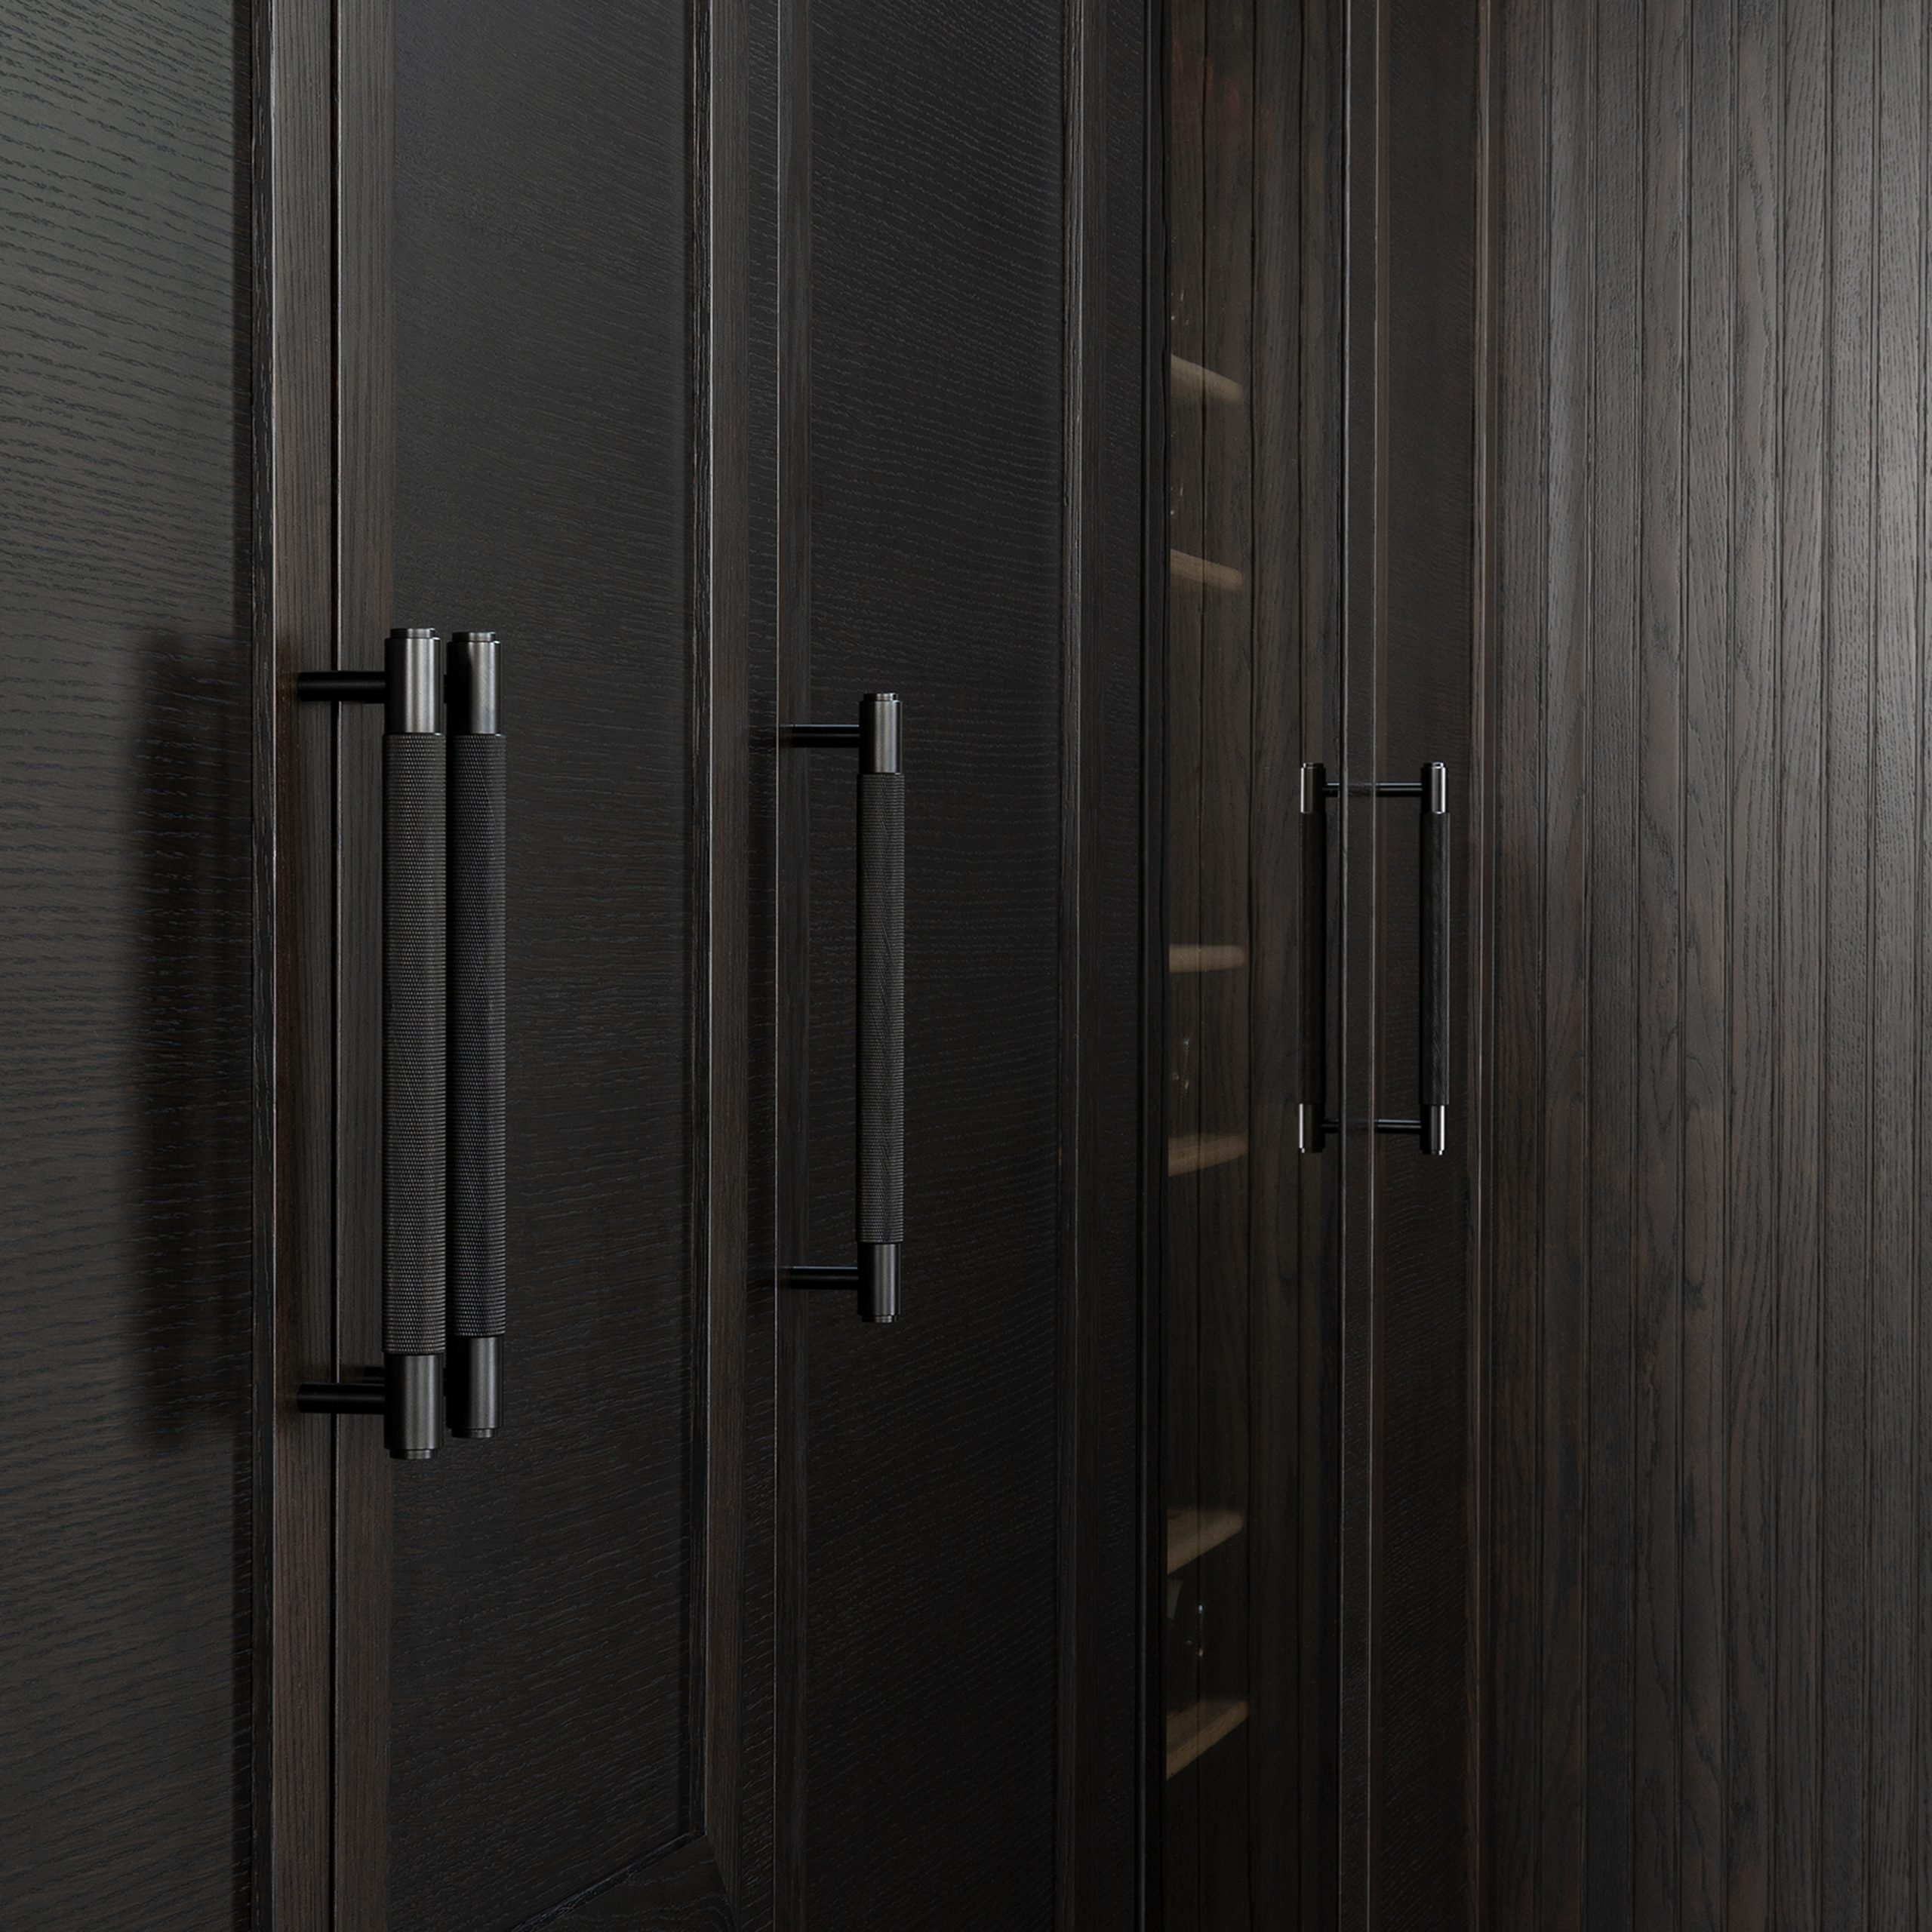 2. Buster+Punch_Pull Bar_Smoked Bronze_Closet 2